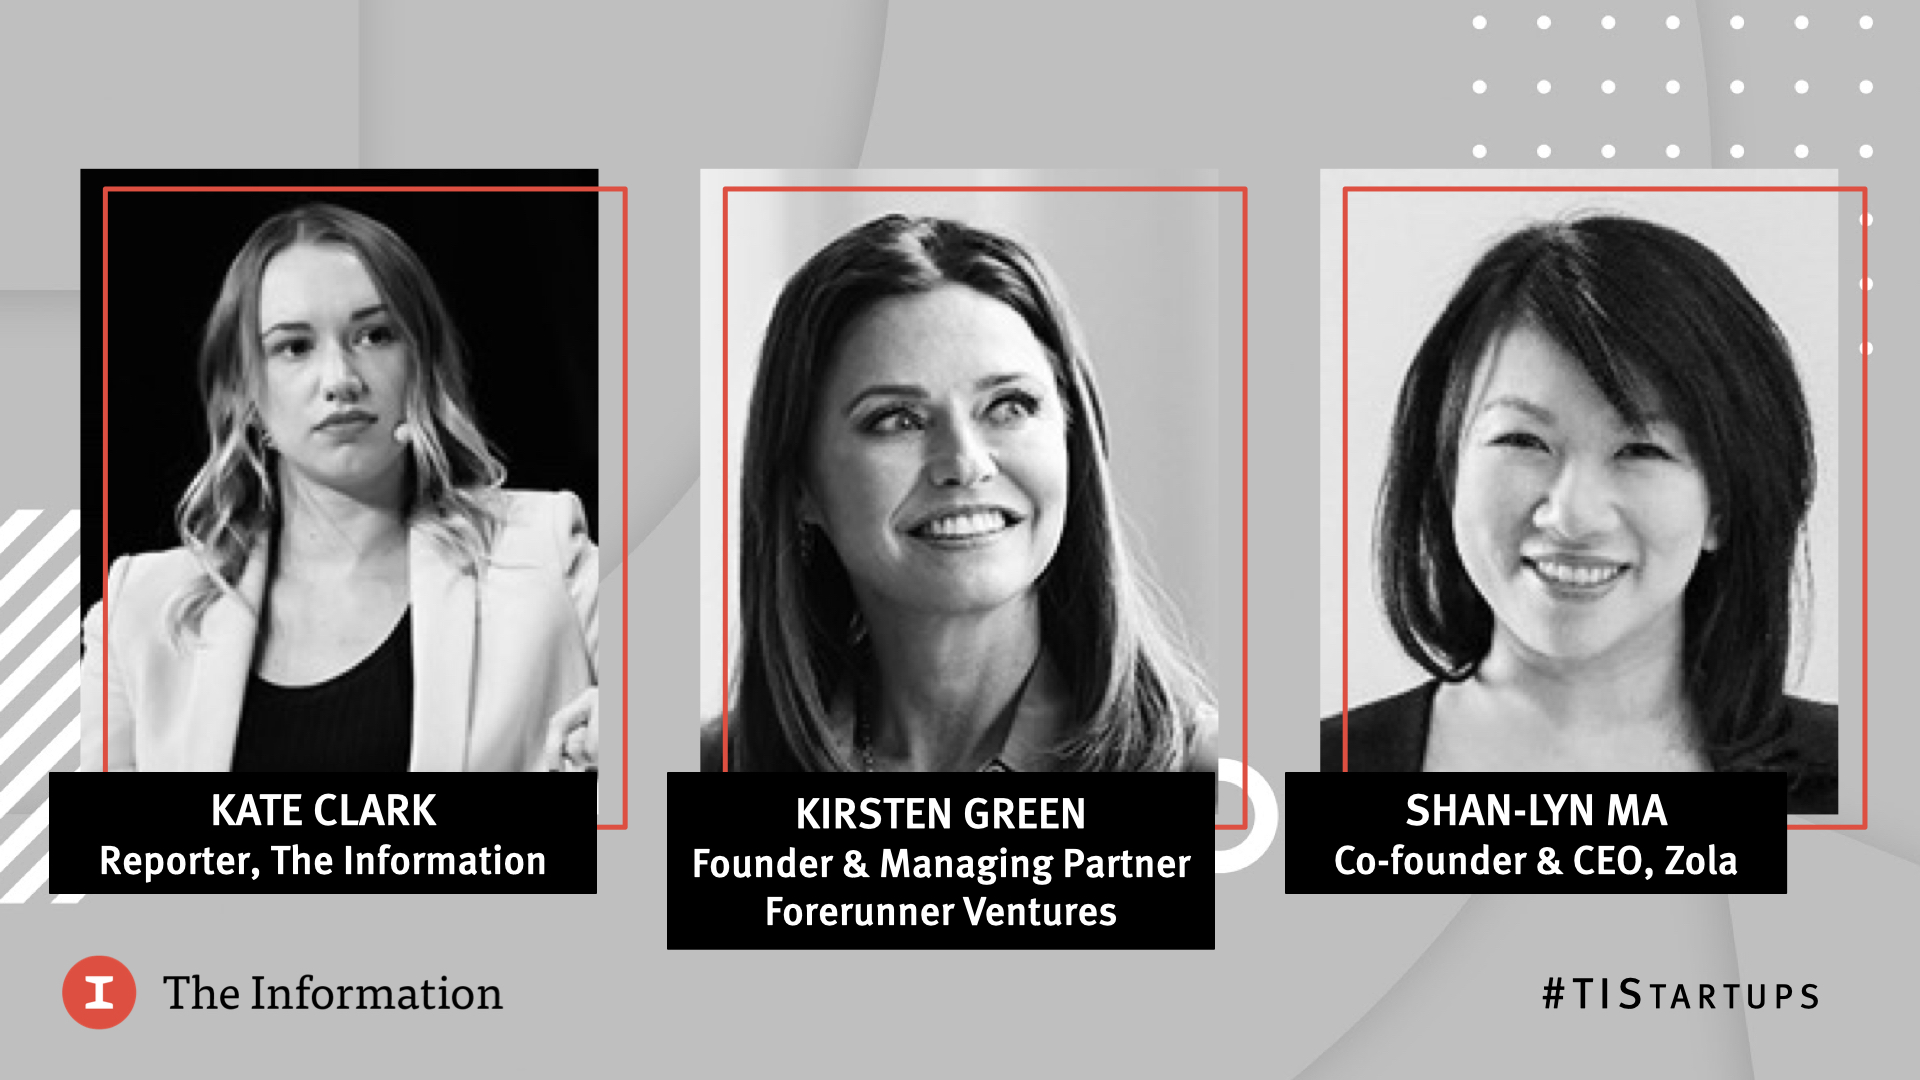 Future of Startups 2021 - Shan-Lyn Ma, Co-founder & CEO, Zola & Kirsten Green, Founder & Managing Partner, Forerunner Ventures, in conversation with Kate Clark, Reporter, The Information